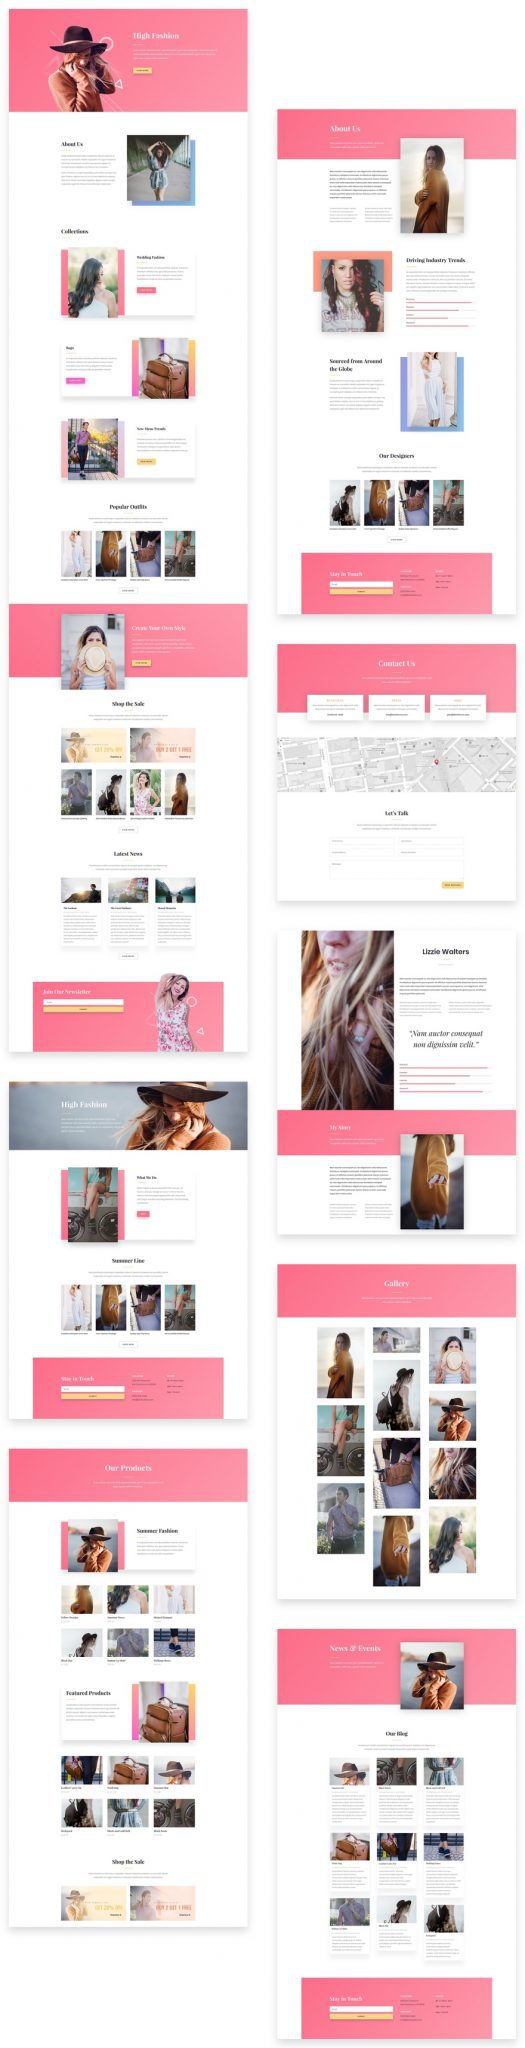 Stylish Fashion Layout Pack